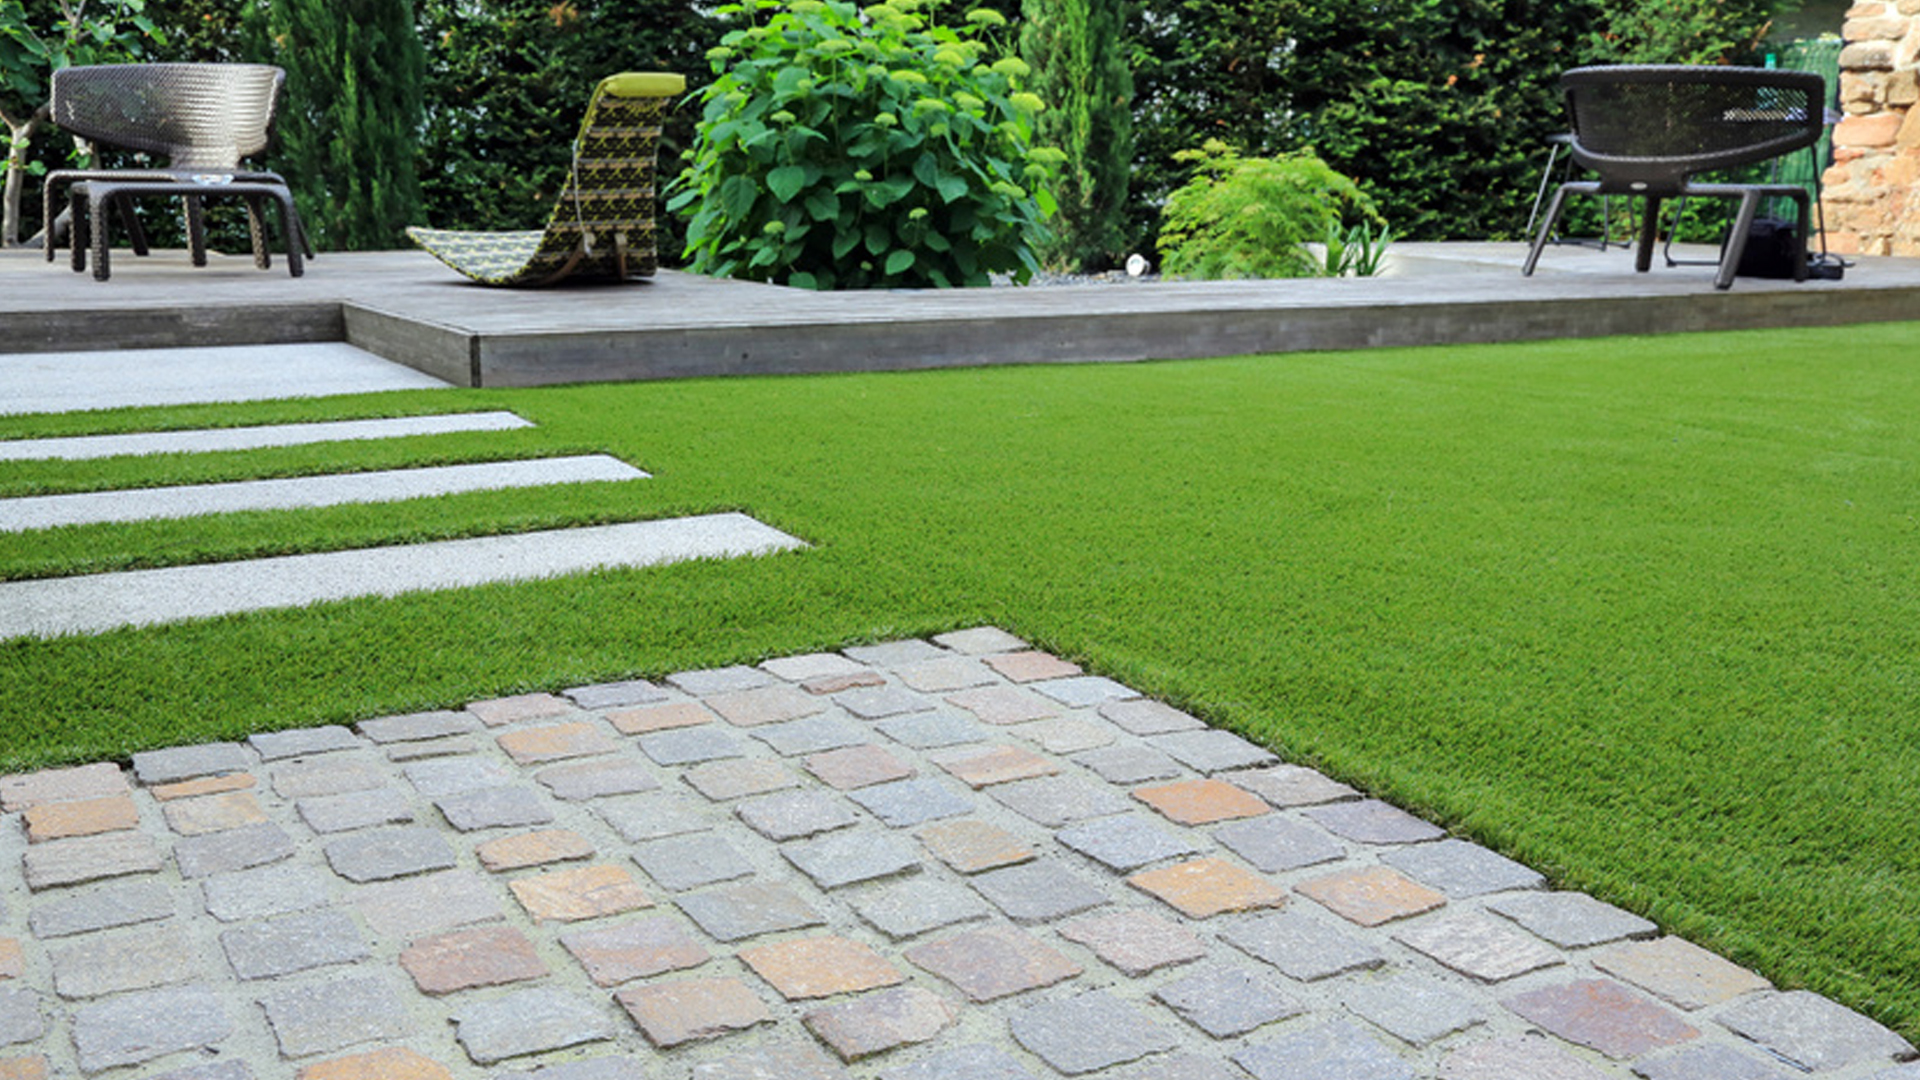 SHOULD I REPLACE MY GRASS WITH ASTROTURF?